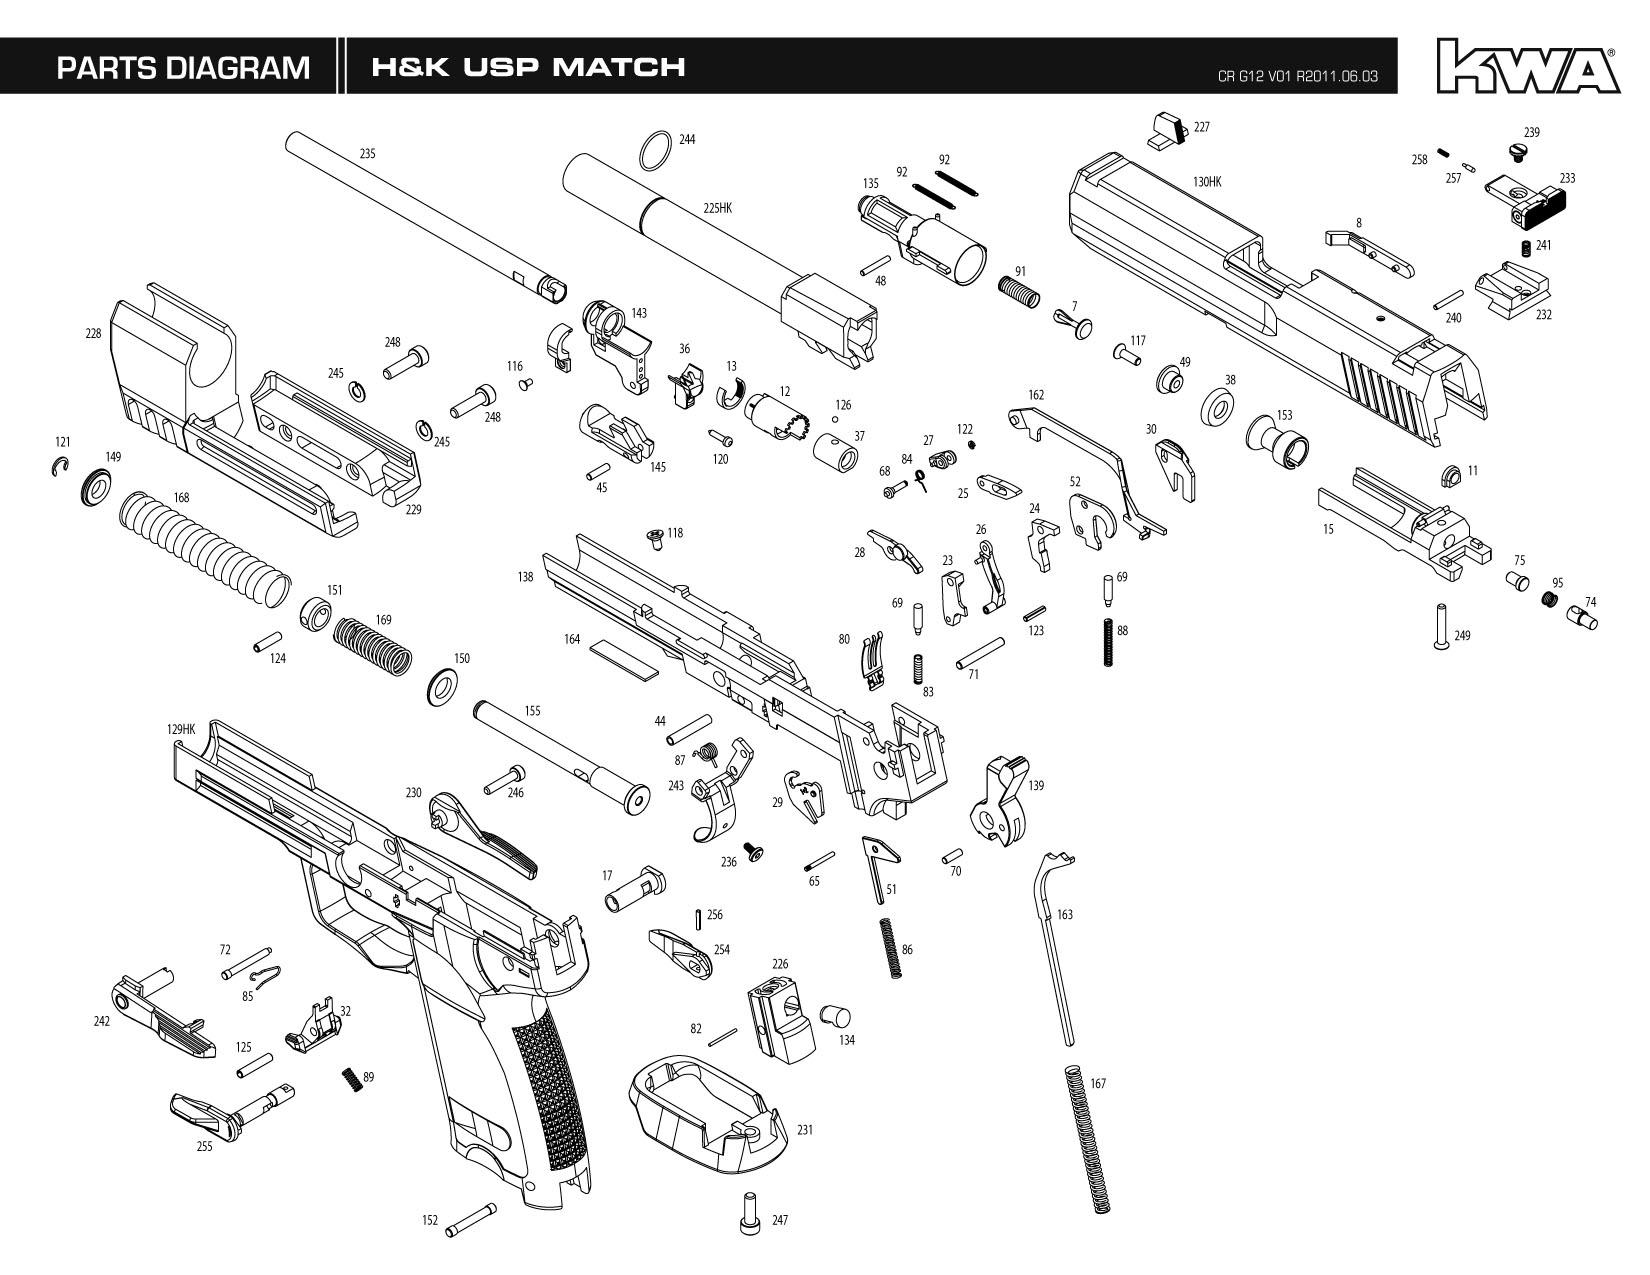 free download kwa h&k usp match gas blowback instruction manual walther p99 compact diagram walther p99 diagram #50